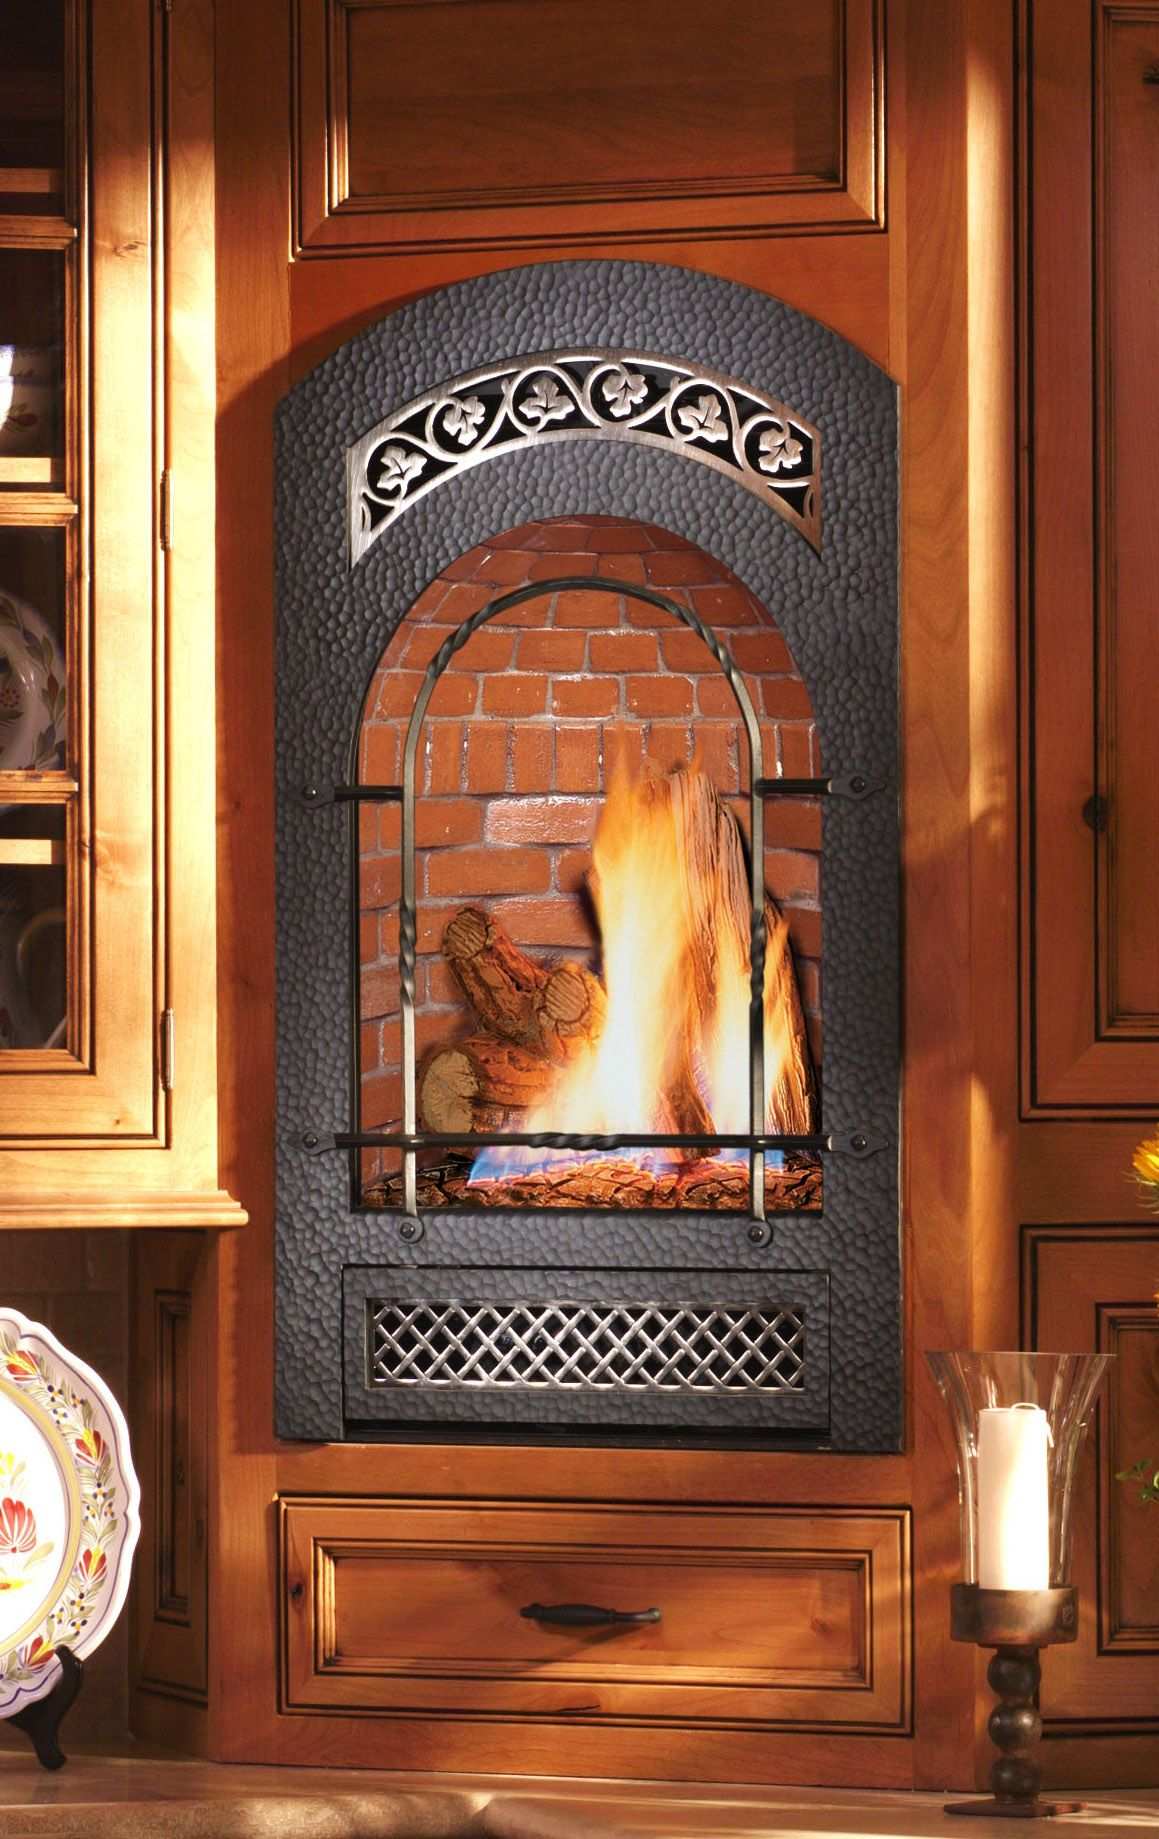 Small Wall Mounted Gas Fireplace Great For Bedrooms Baths B B Model By Fpx Fireplace